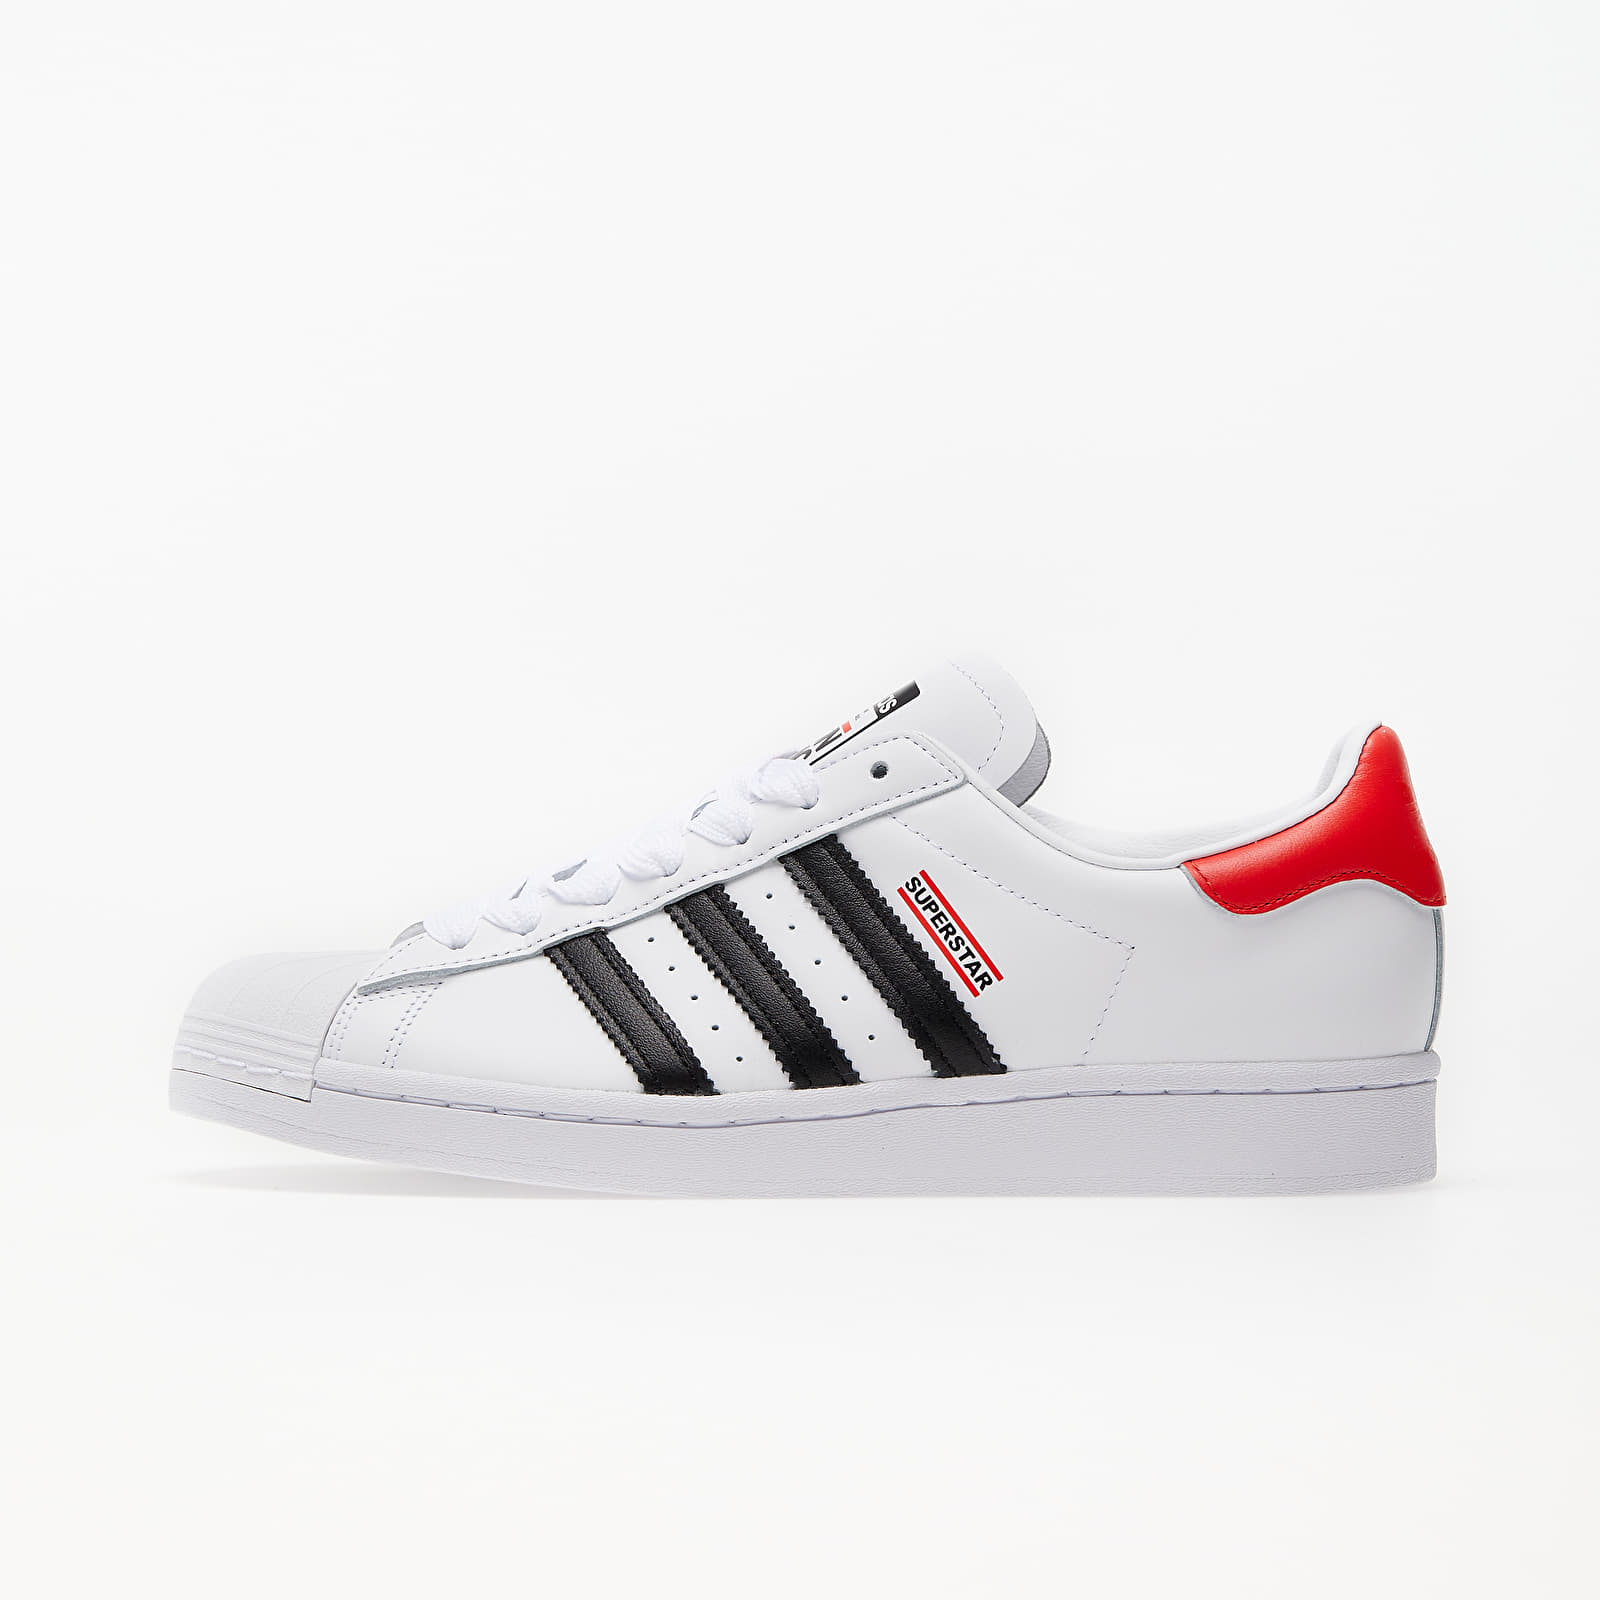 Мъжки кецове и обувки adidas x RUN DMC Superstar 50 Ftw White/ Core Black/ Hi-Res Red